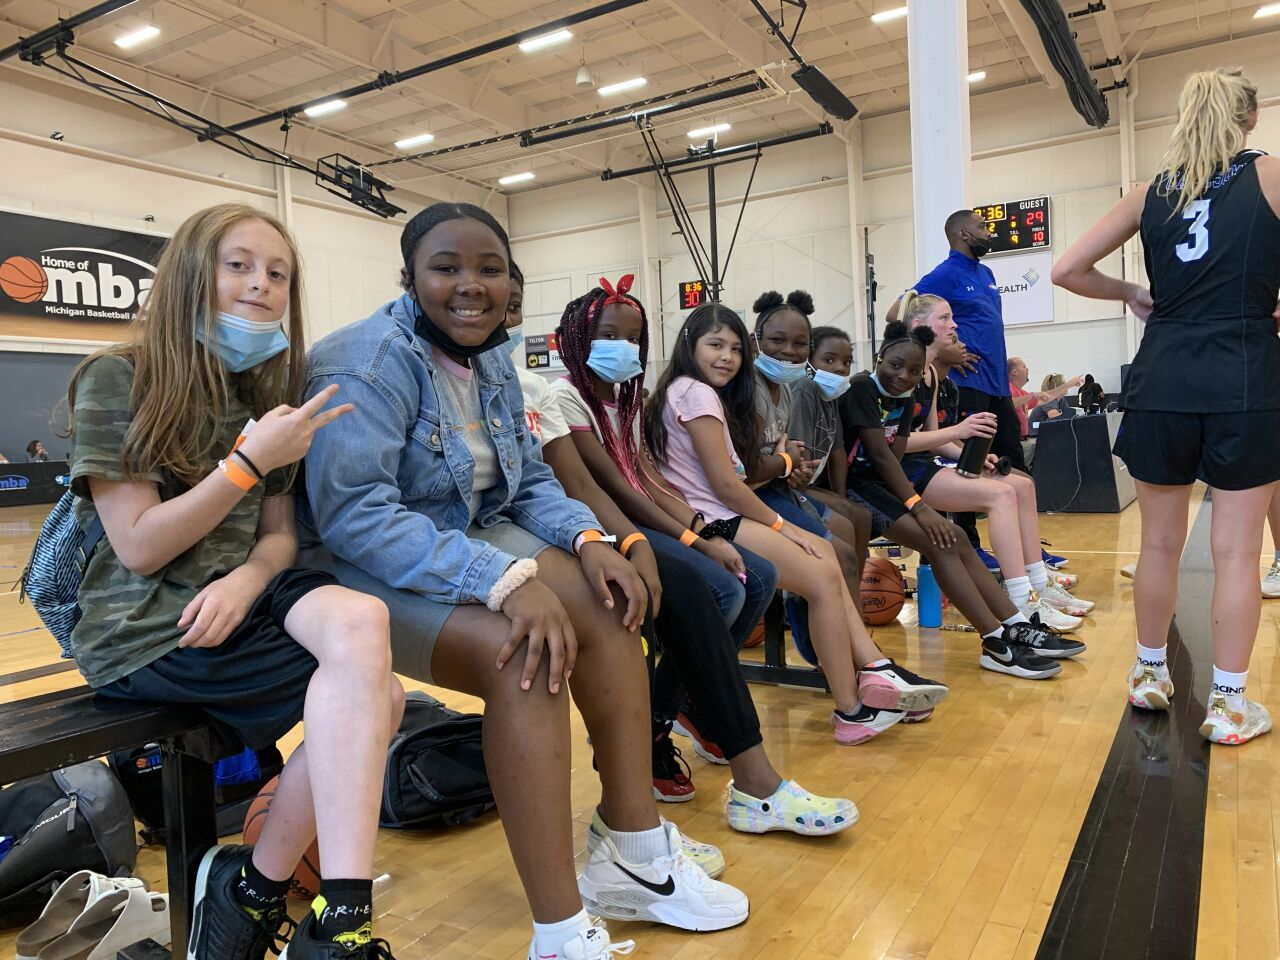 Boys & Girls Club of Grand Rapids takes in a basketball game